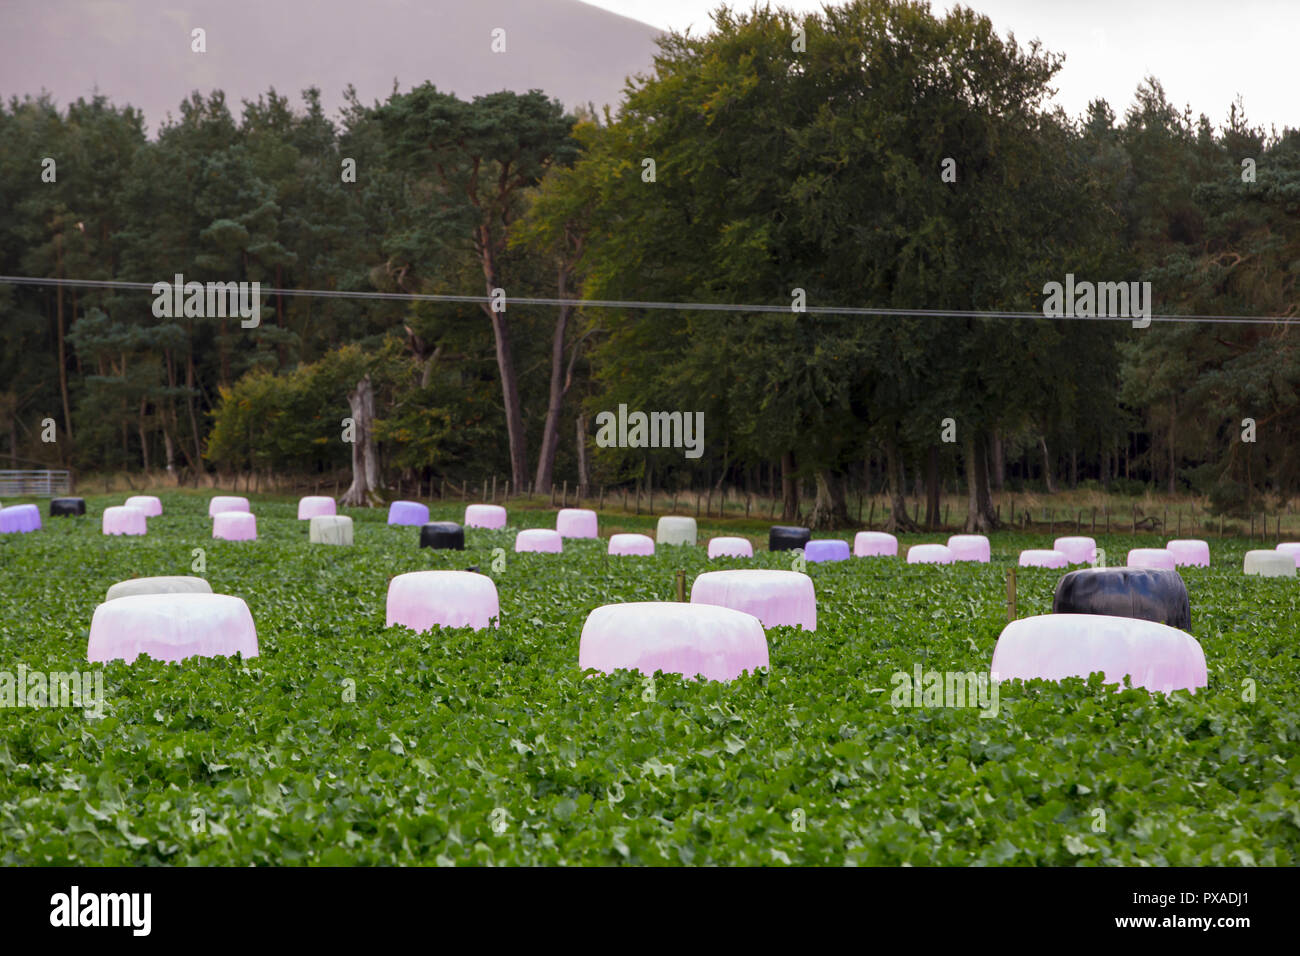 Pink bales on a famr in South Lanarkshire, Scotland, UK. - Stock Image